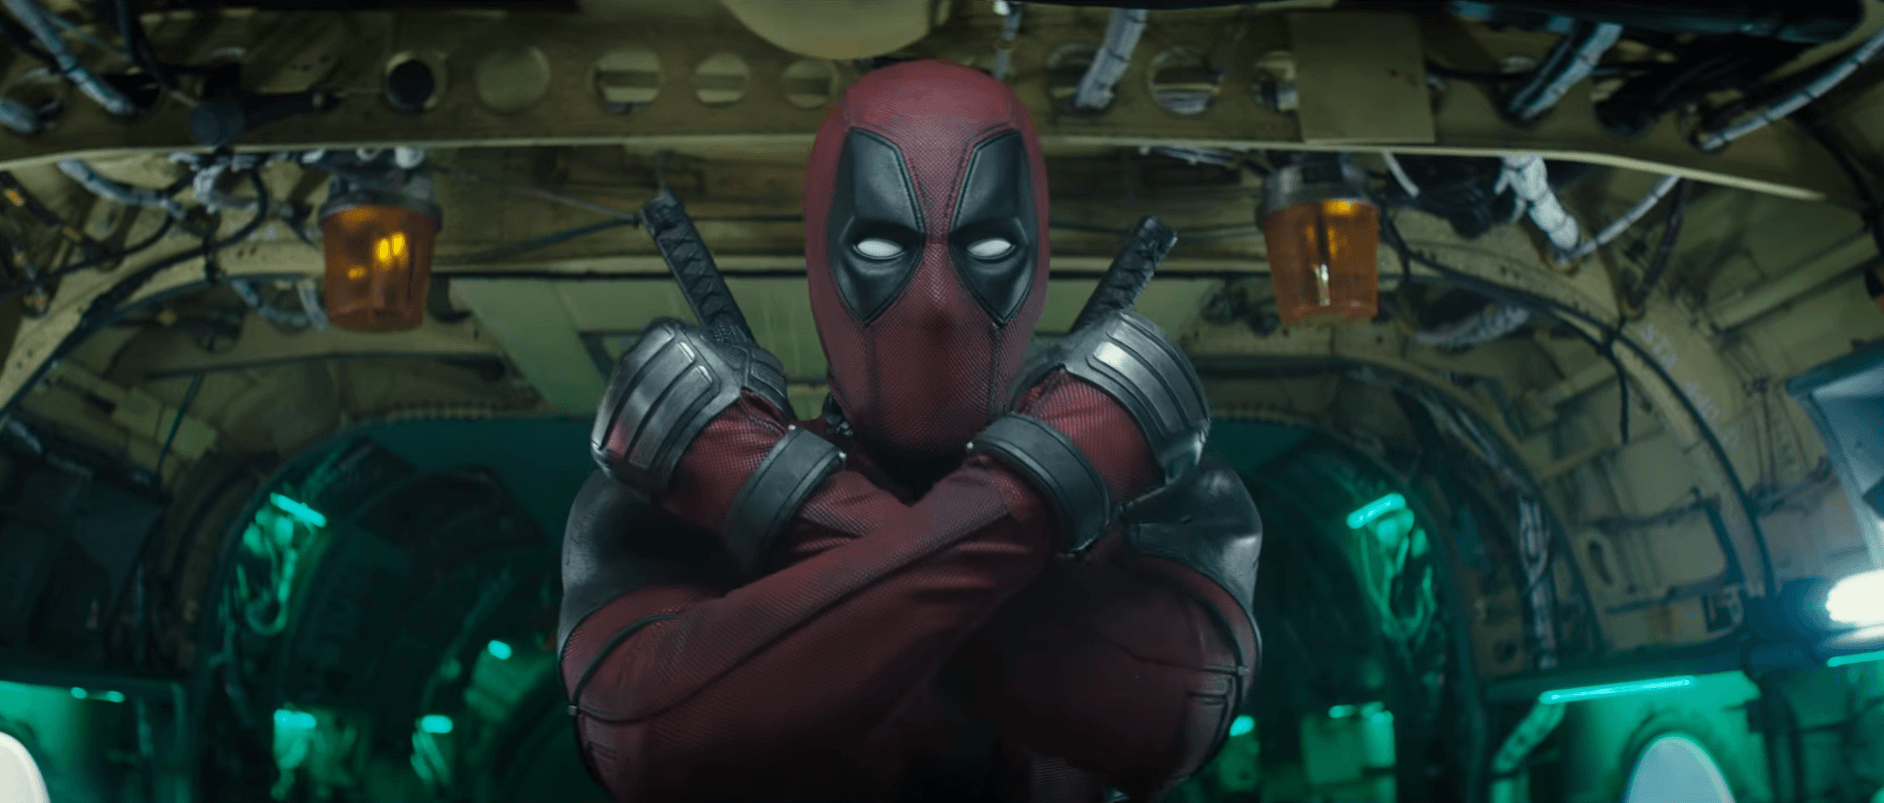 1884x803 Best Deadpool 2 Movie HD Wallpapers Pictures Images Download